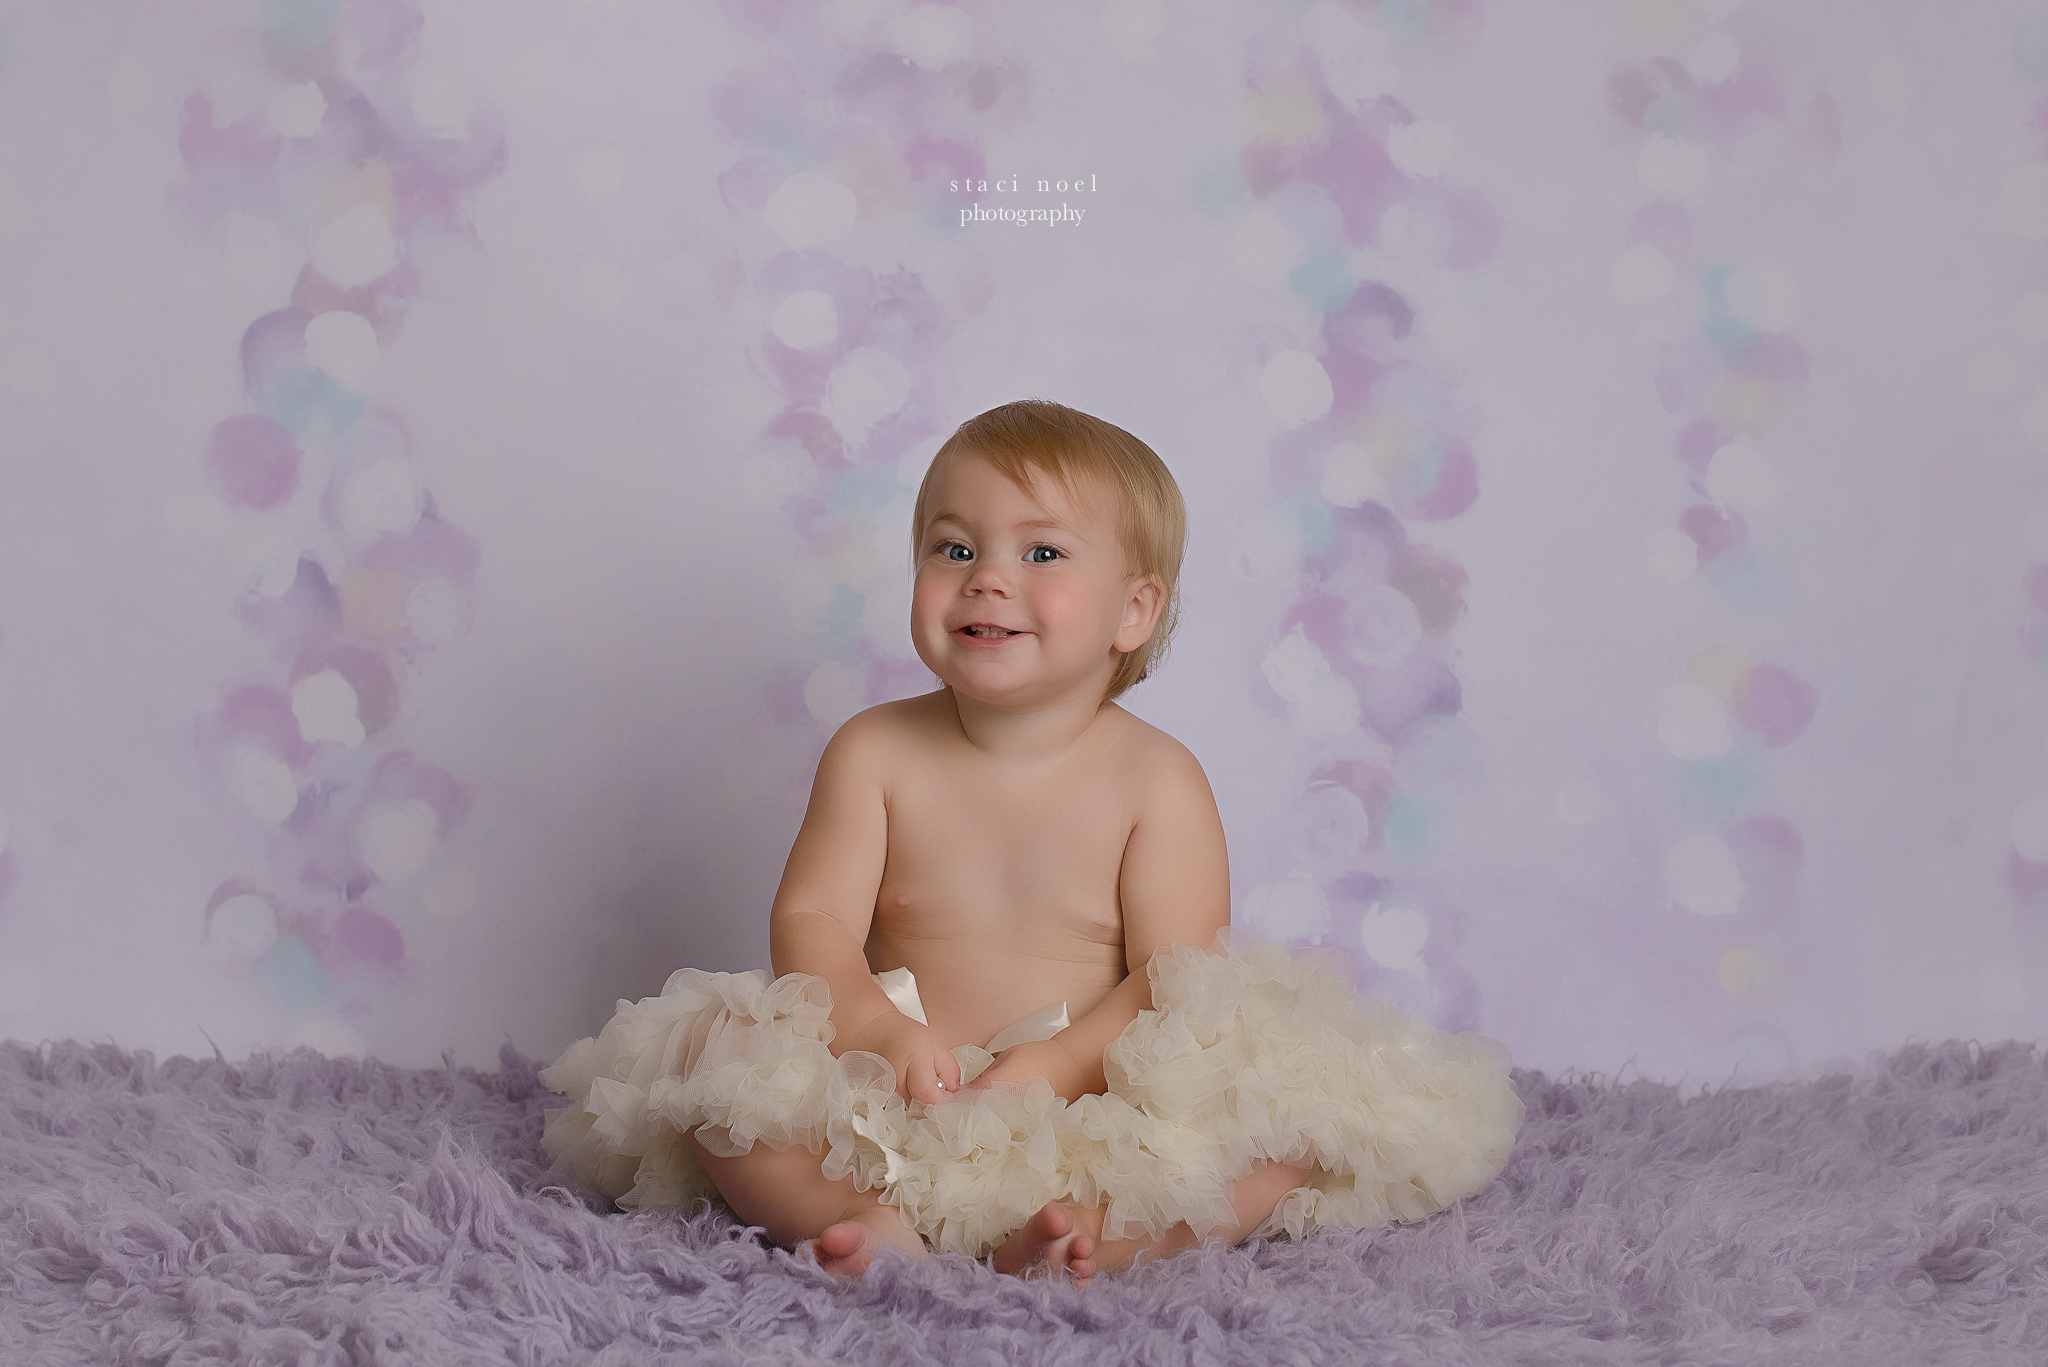 charlotte.baby.photographer.1year.stacinoelphotography.6.jpg